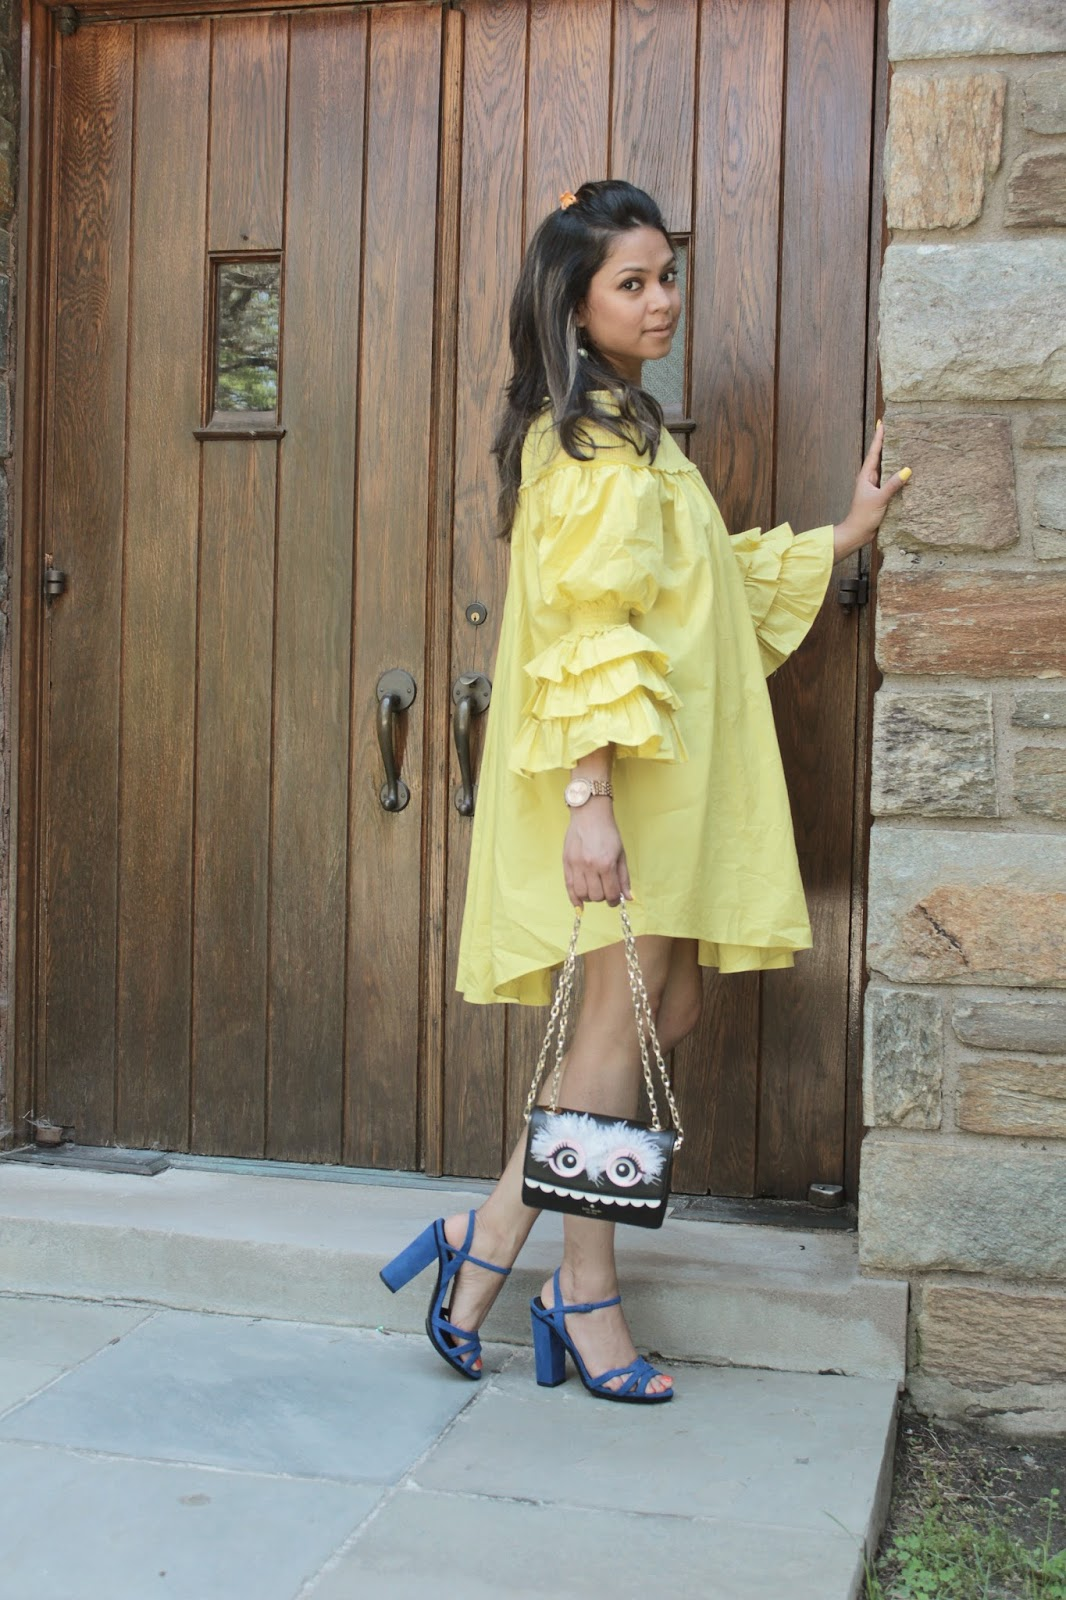 forever 21 yellow ruffle sleeve dress, street style, blue sandals, summer dress, yellow dress, ruffle sleeve, sunshine, half up hairdo, monster bag , myriad musings, saumya shiohare